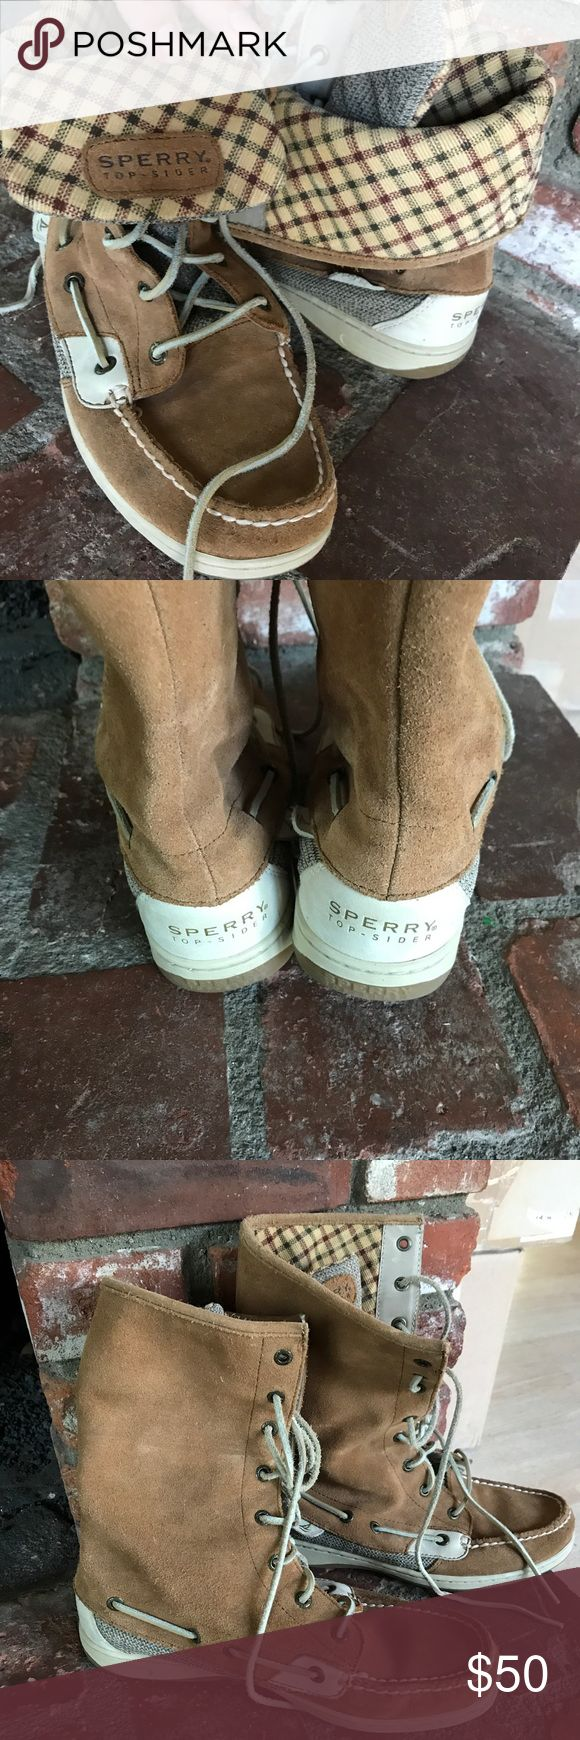 SPERRY ❤️Last CHANCE❤️ Weatherproofed and worn once. Can be folded into a shorter boot or worn as a mid calf boot. Suede excellent condition. Does not come with box. Sperry Top-Sider Shoes Winter & Rain Boots